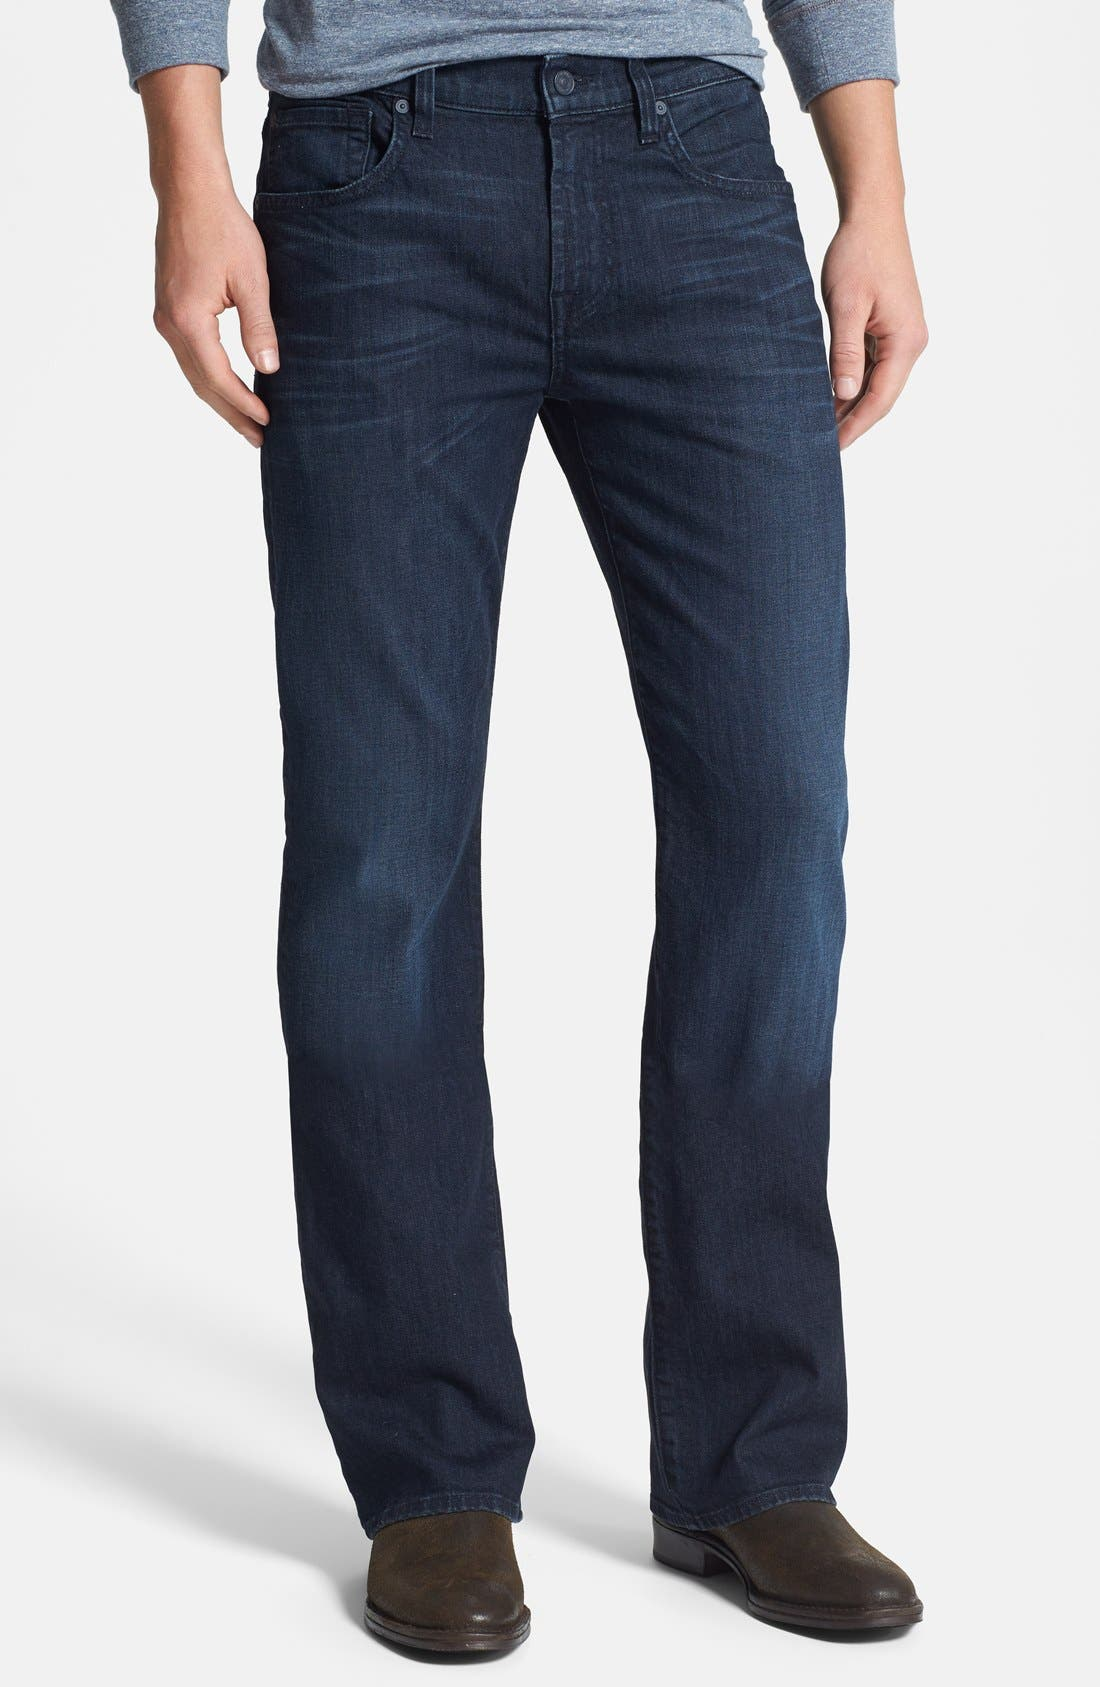 Main Image - 7 For All Mankind® 'Brett' Bootcut Jeans (Sunset Hill Blue) (Online Only)